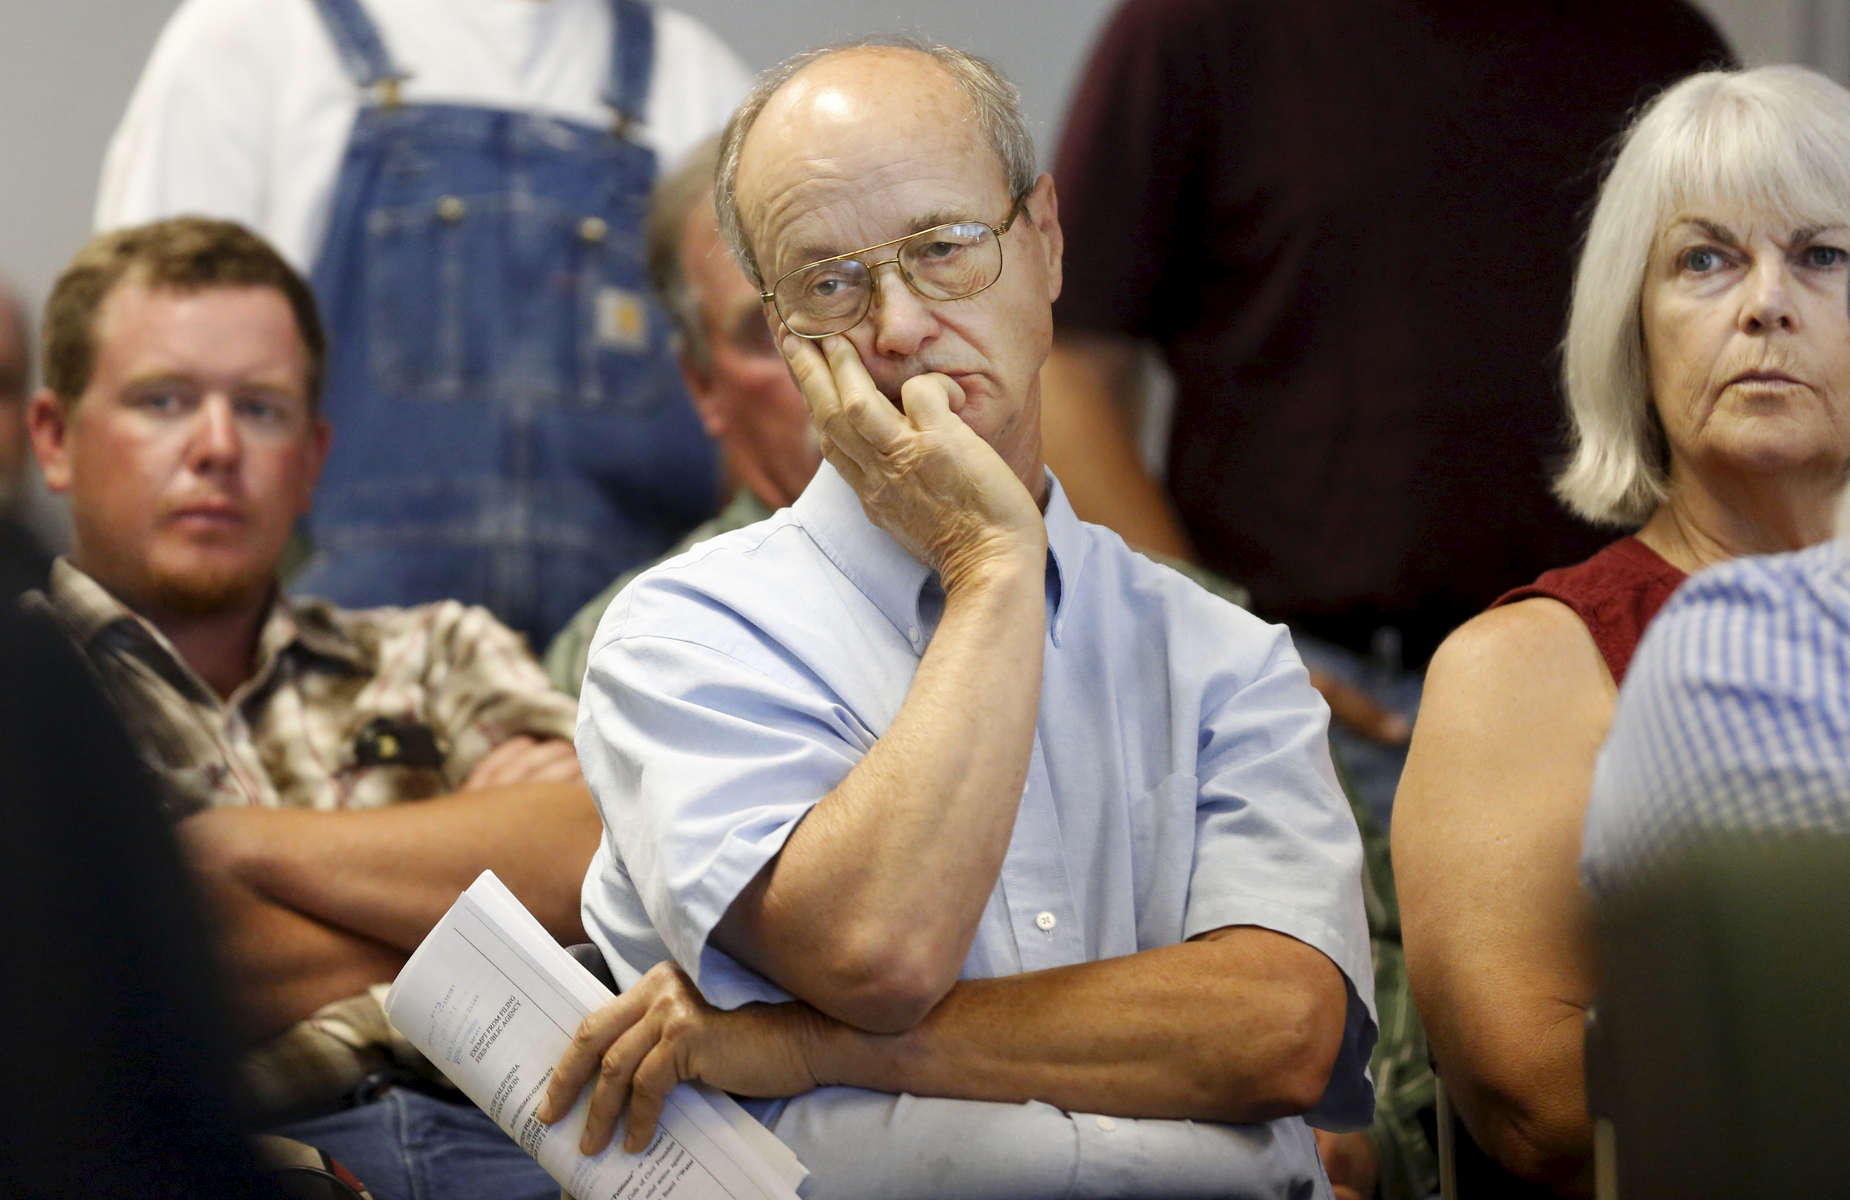 Farmer Glenn Roberston listens to arguments during a hearing between the State Water Board and the Banta-Carbona Irrigation District June 23, 2015 in Stockton, Calif. The hearing was expected to determine whether the state water board can legally stop diversions in the water district, which would threaten the water supply of hundreds of farmers.